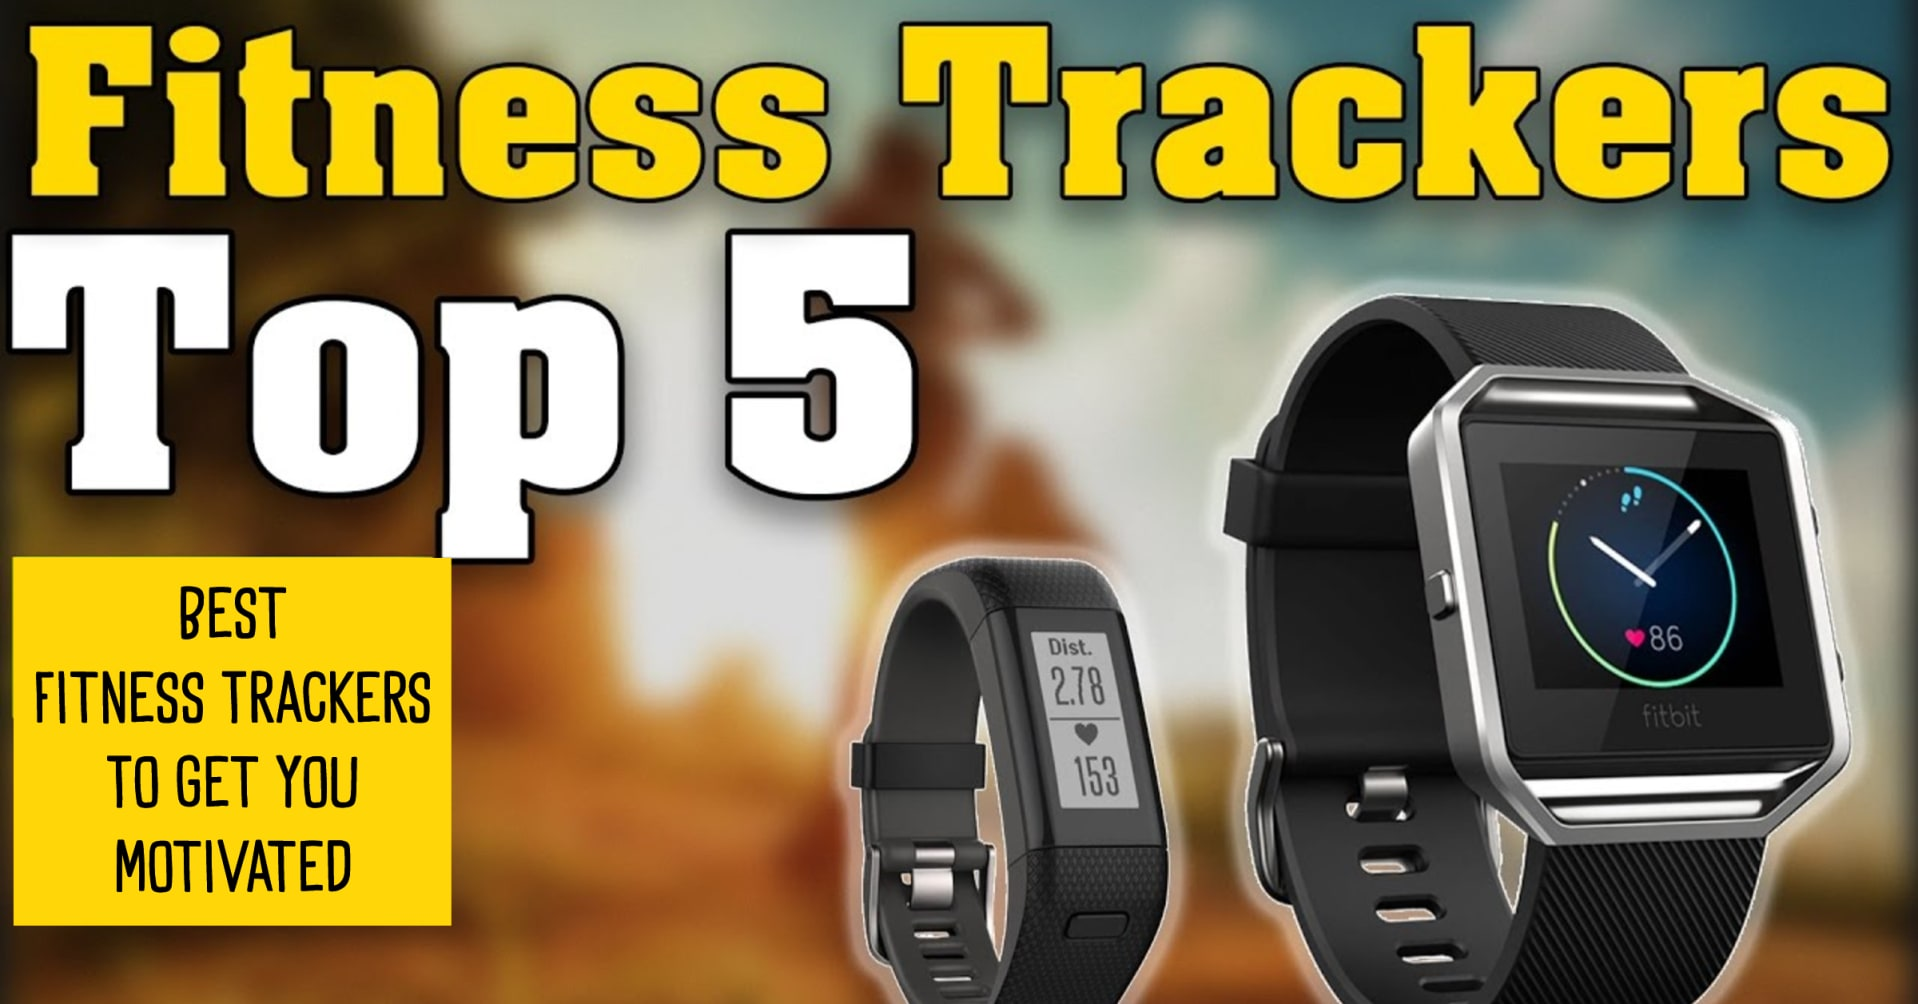 Will a Fitness Tracker Help Me Get Motivated? (5 Best Fitness Watch Trackers This Year)